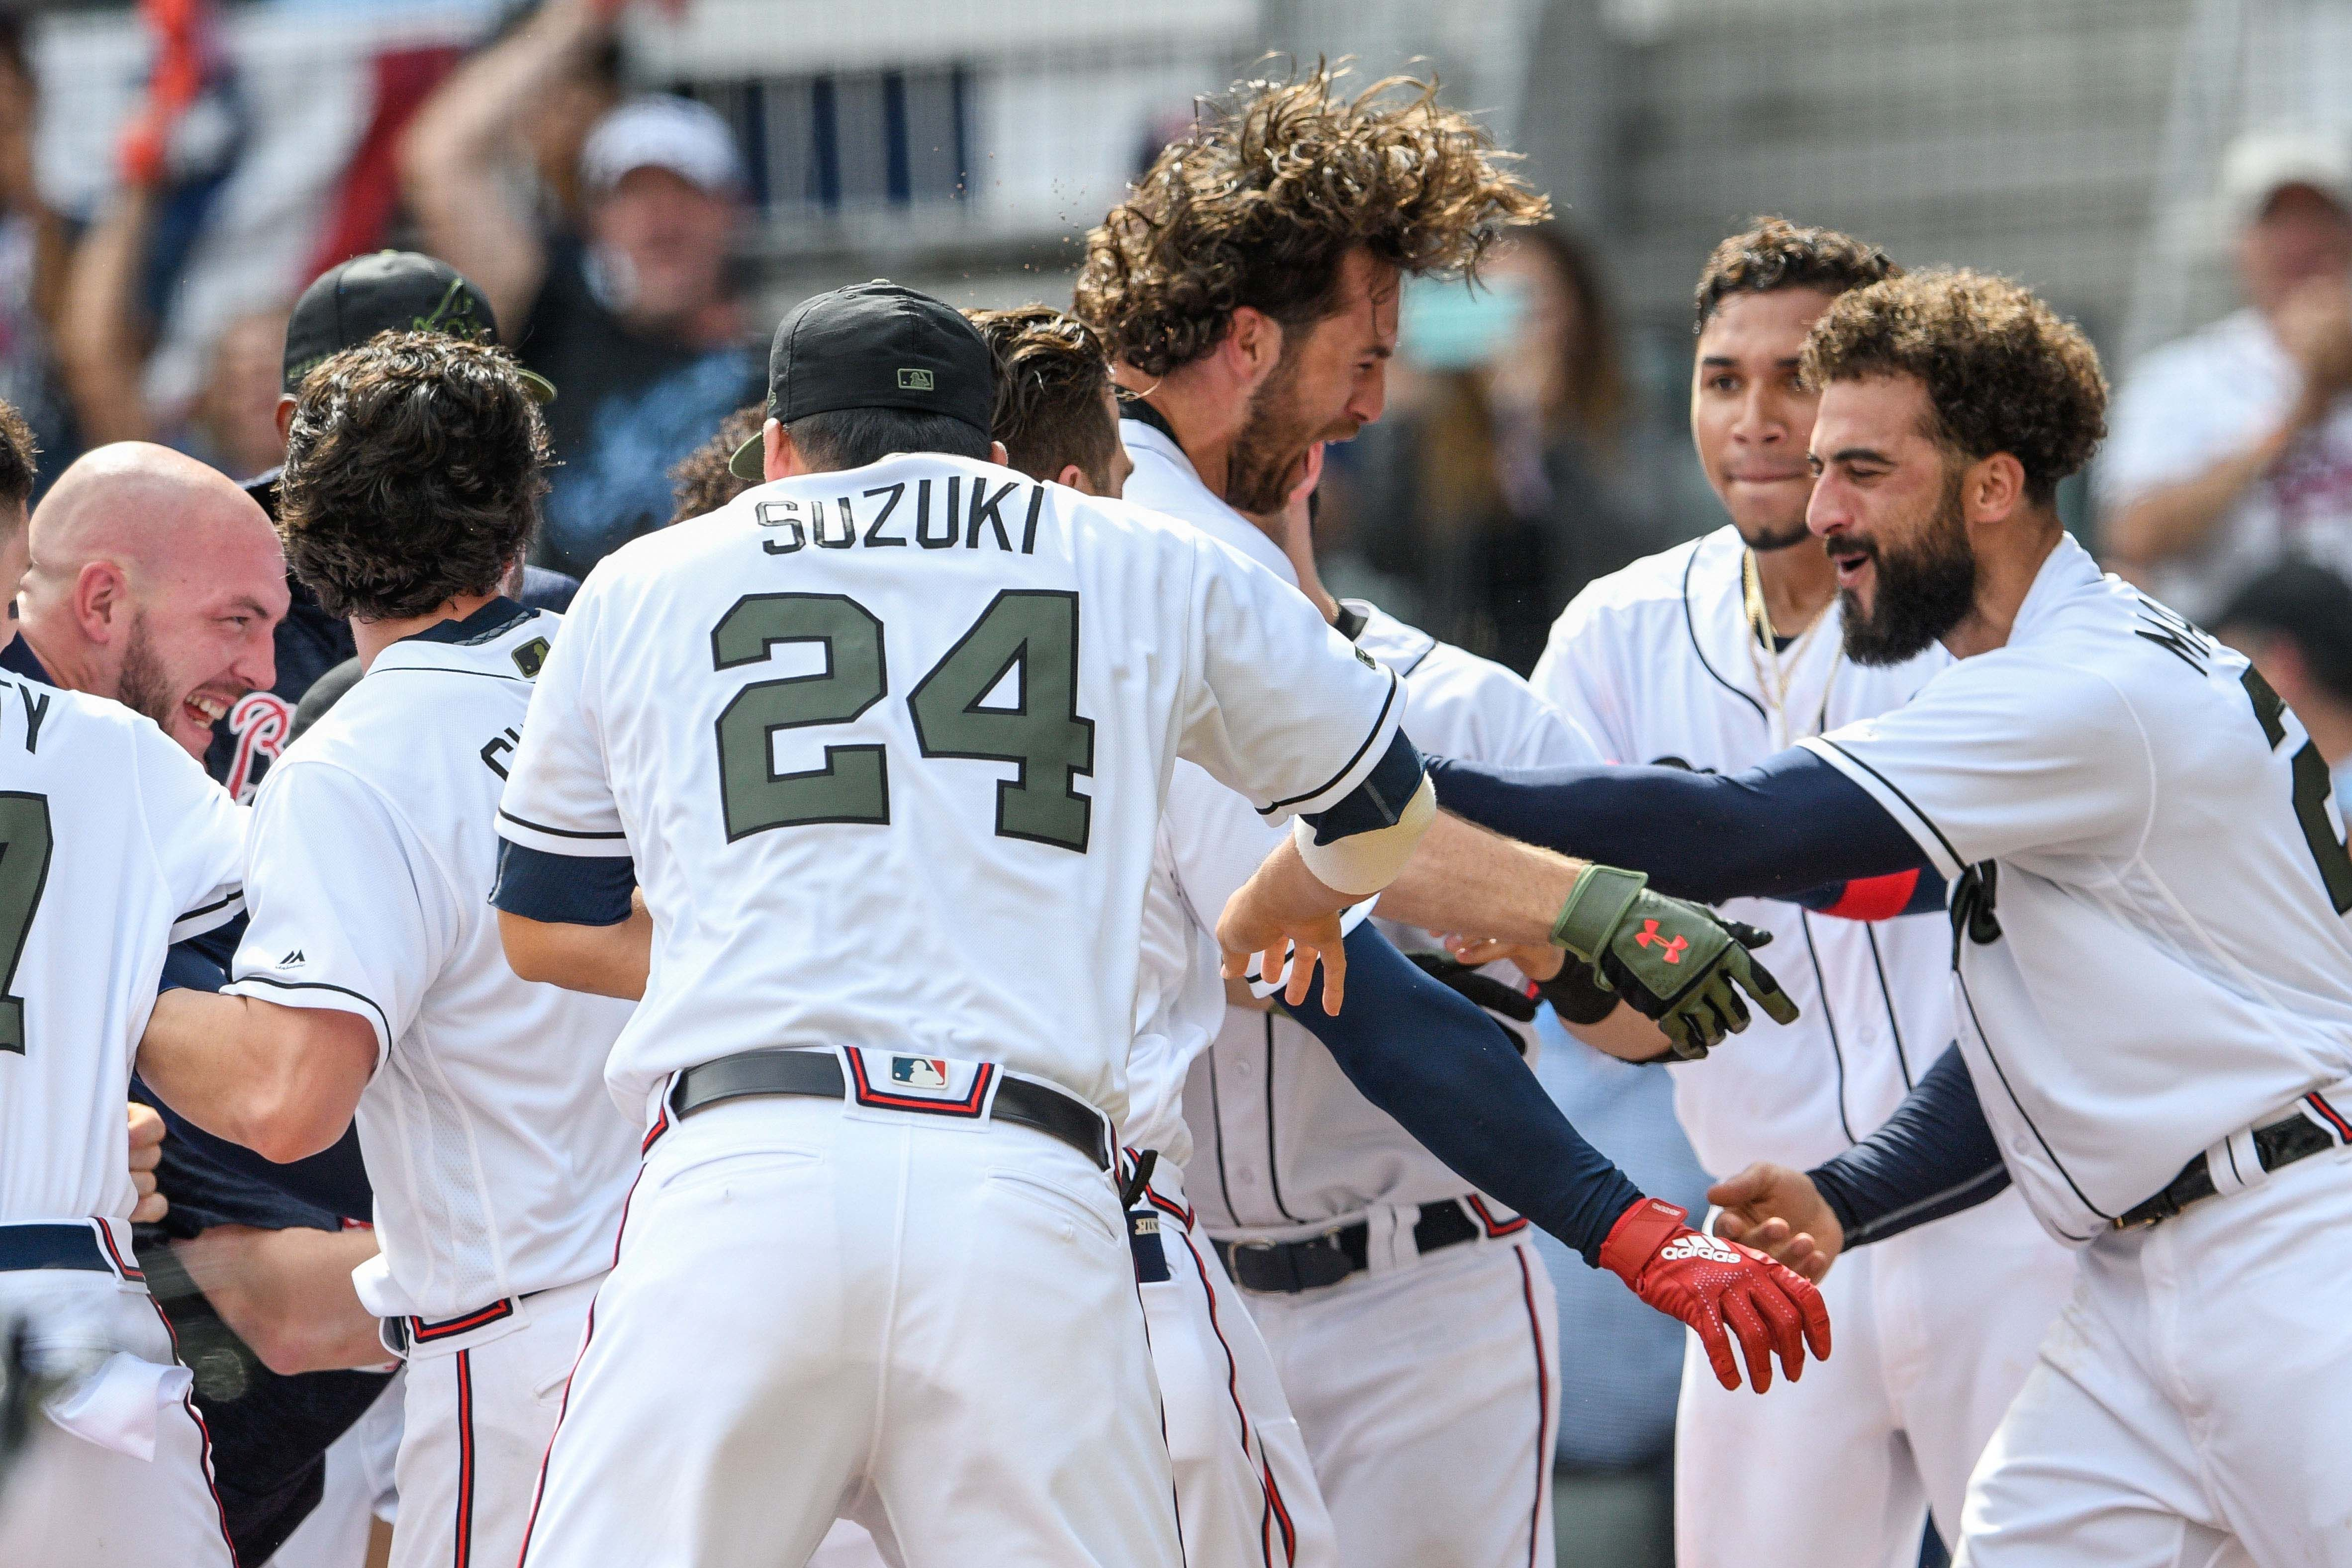 Atlanta Braves Pinch Hitter Charlie Culberson 16 Center In The Air Reacts With Braves Team Mates After Usa Today Sports Atlanta Braves Atlanta Braves Baby